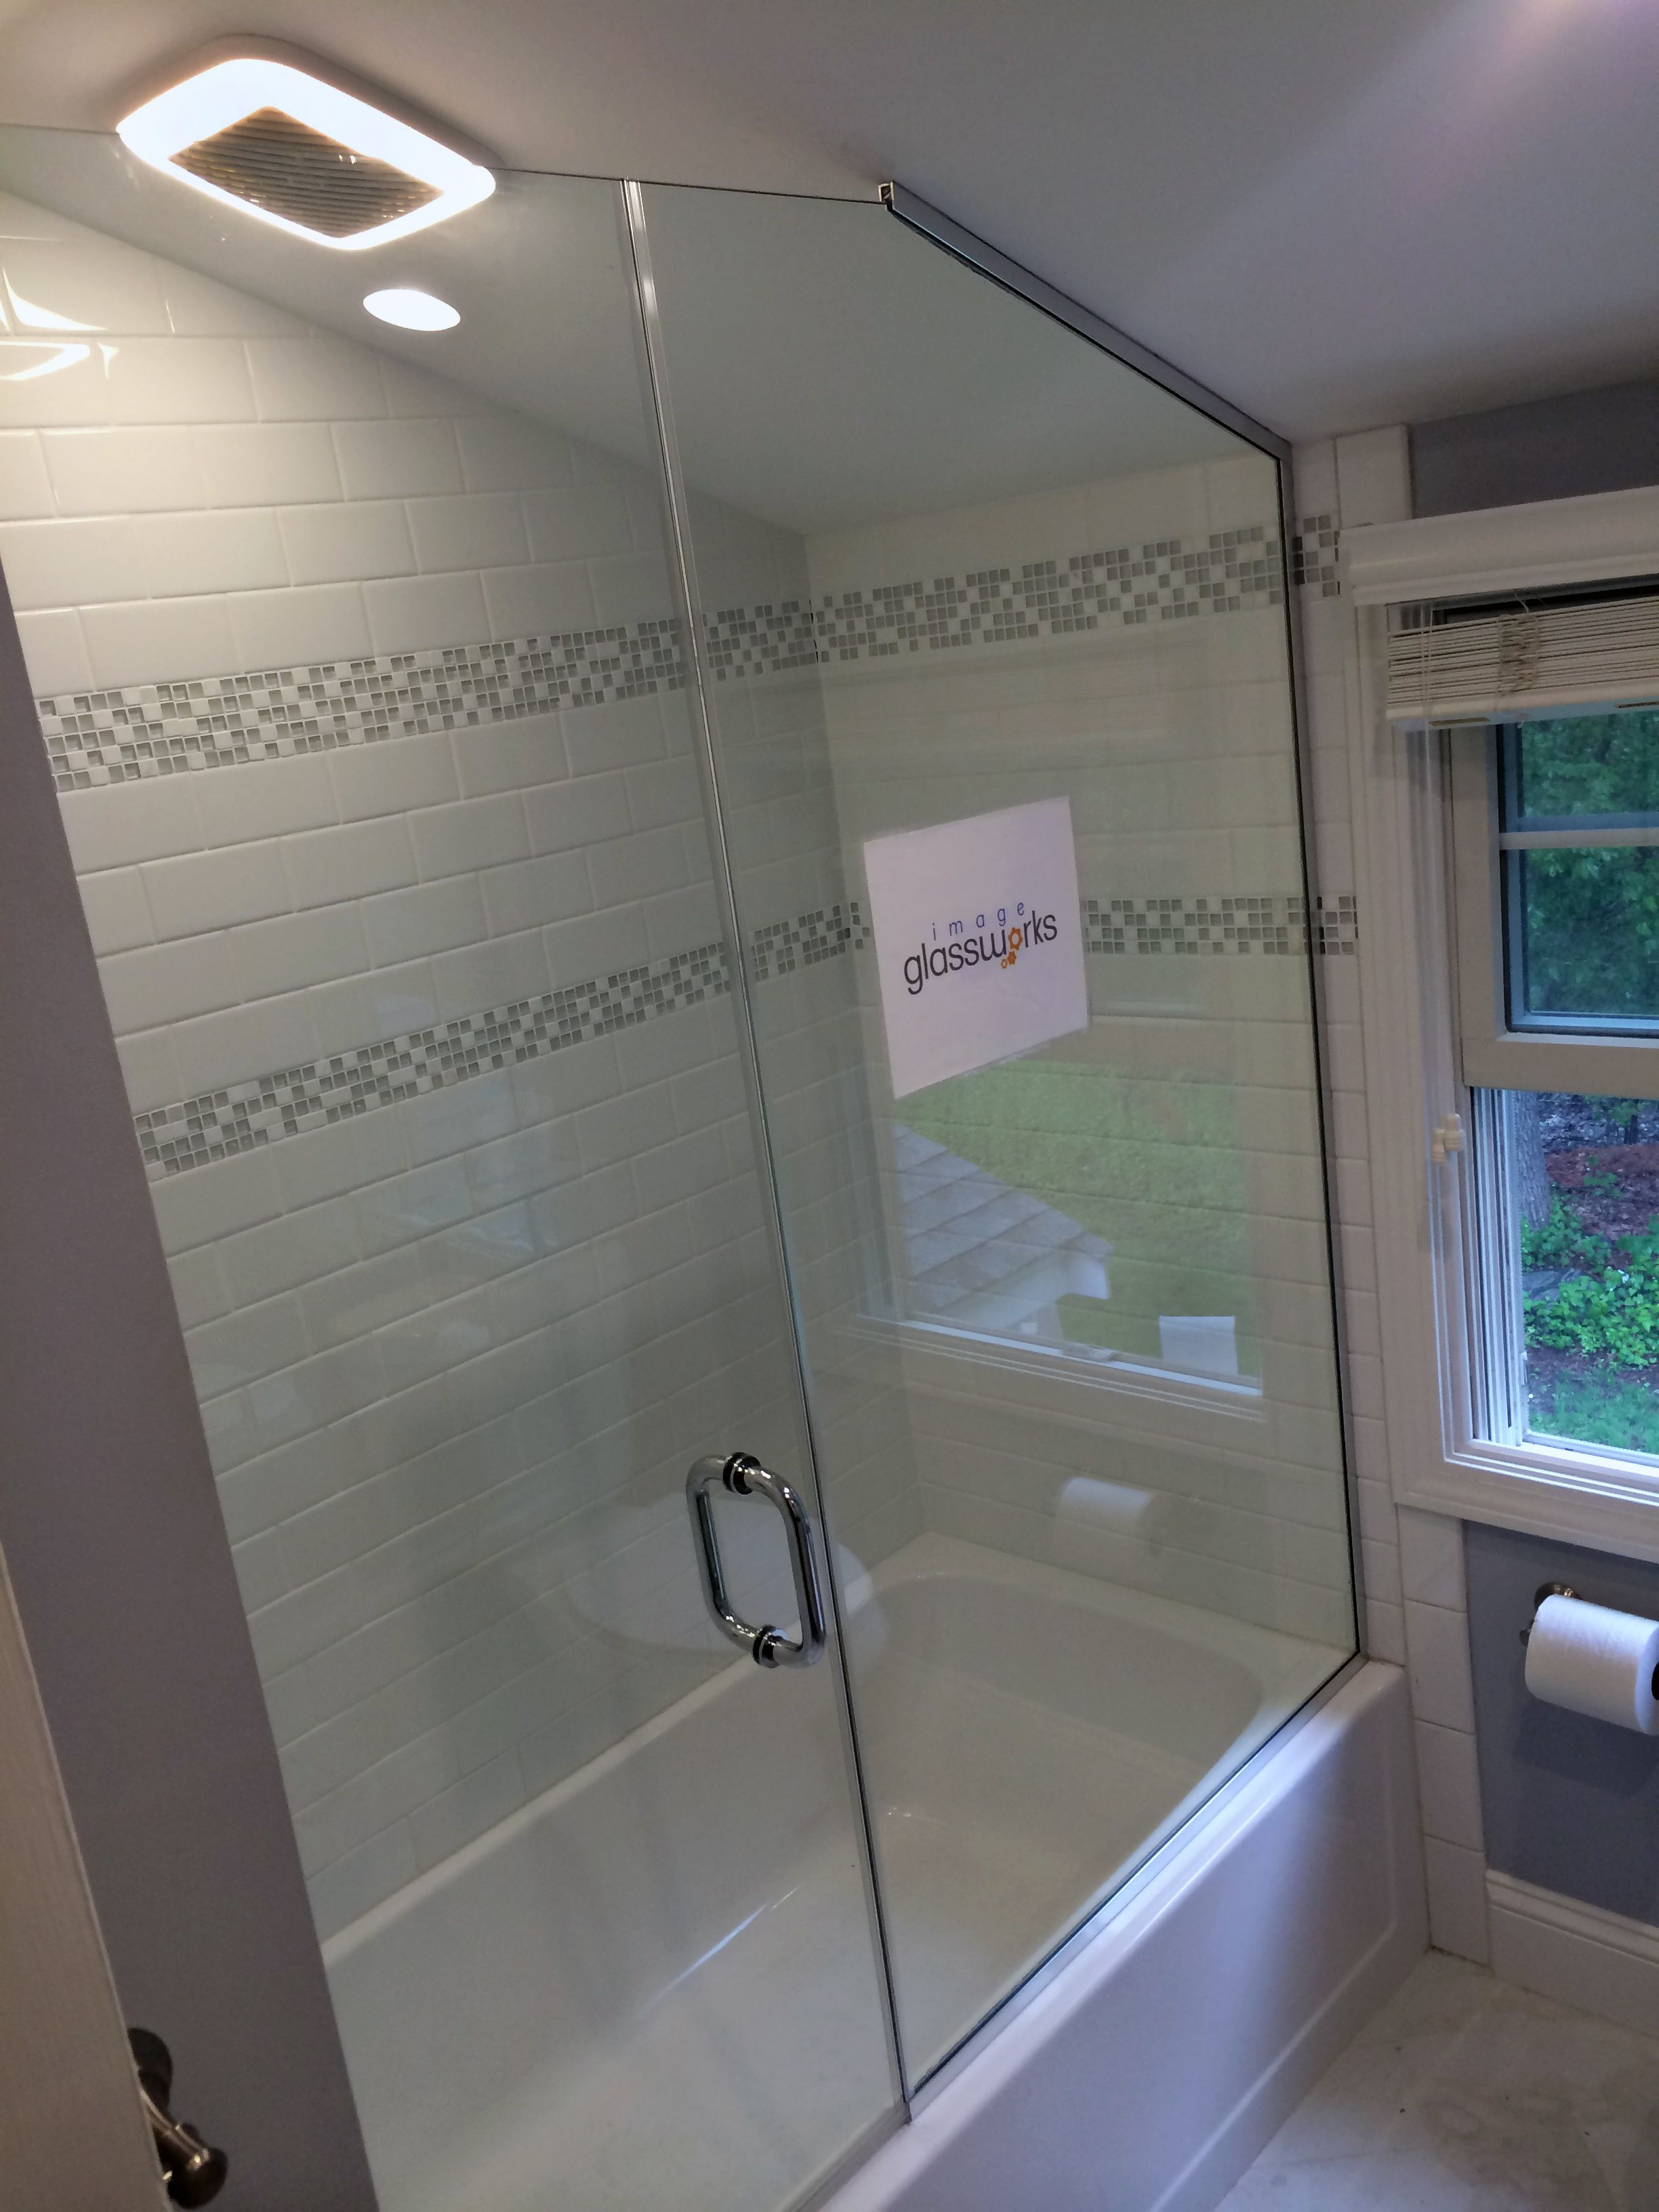 A Simple Frameless Shower Door Installed Above A Tub And Butting A